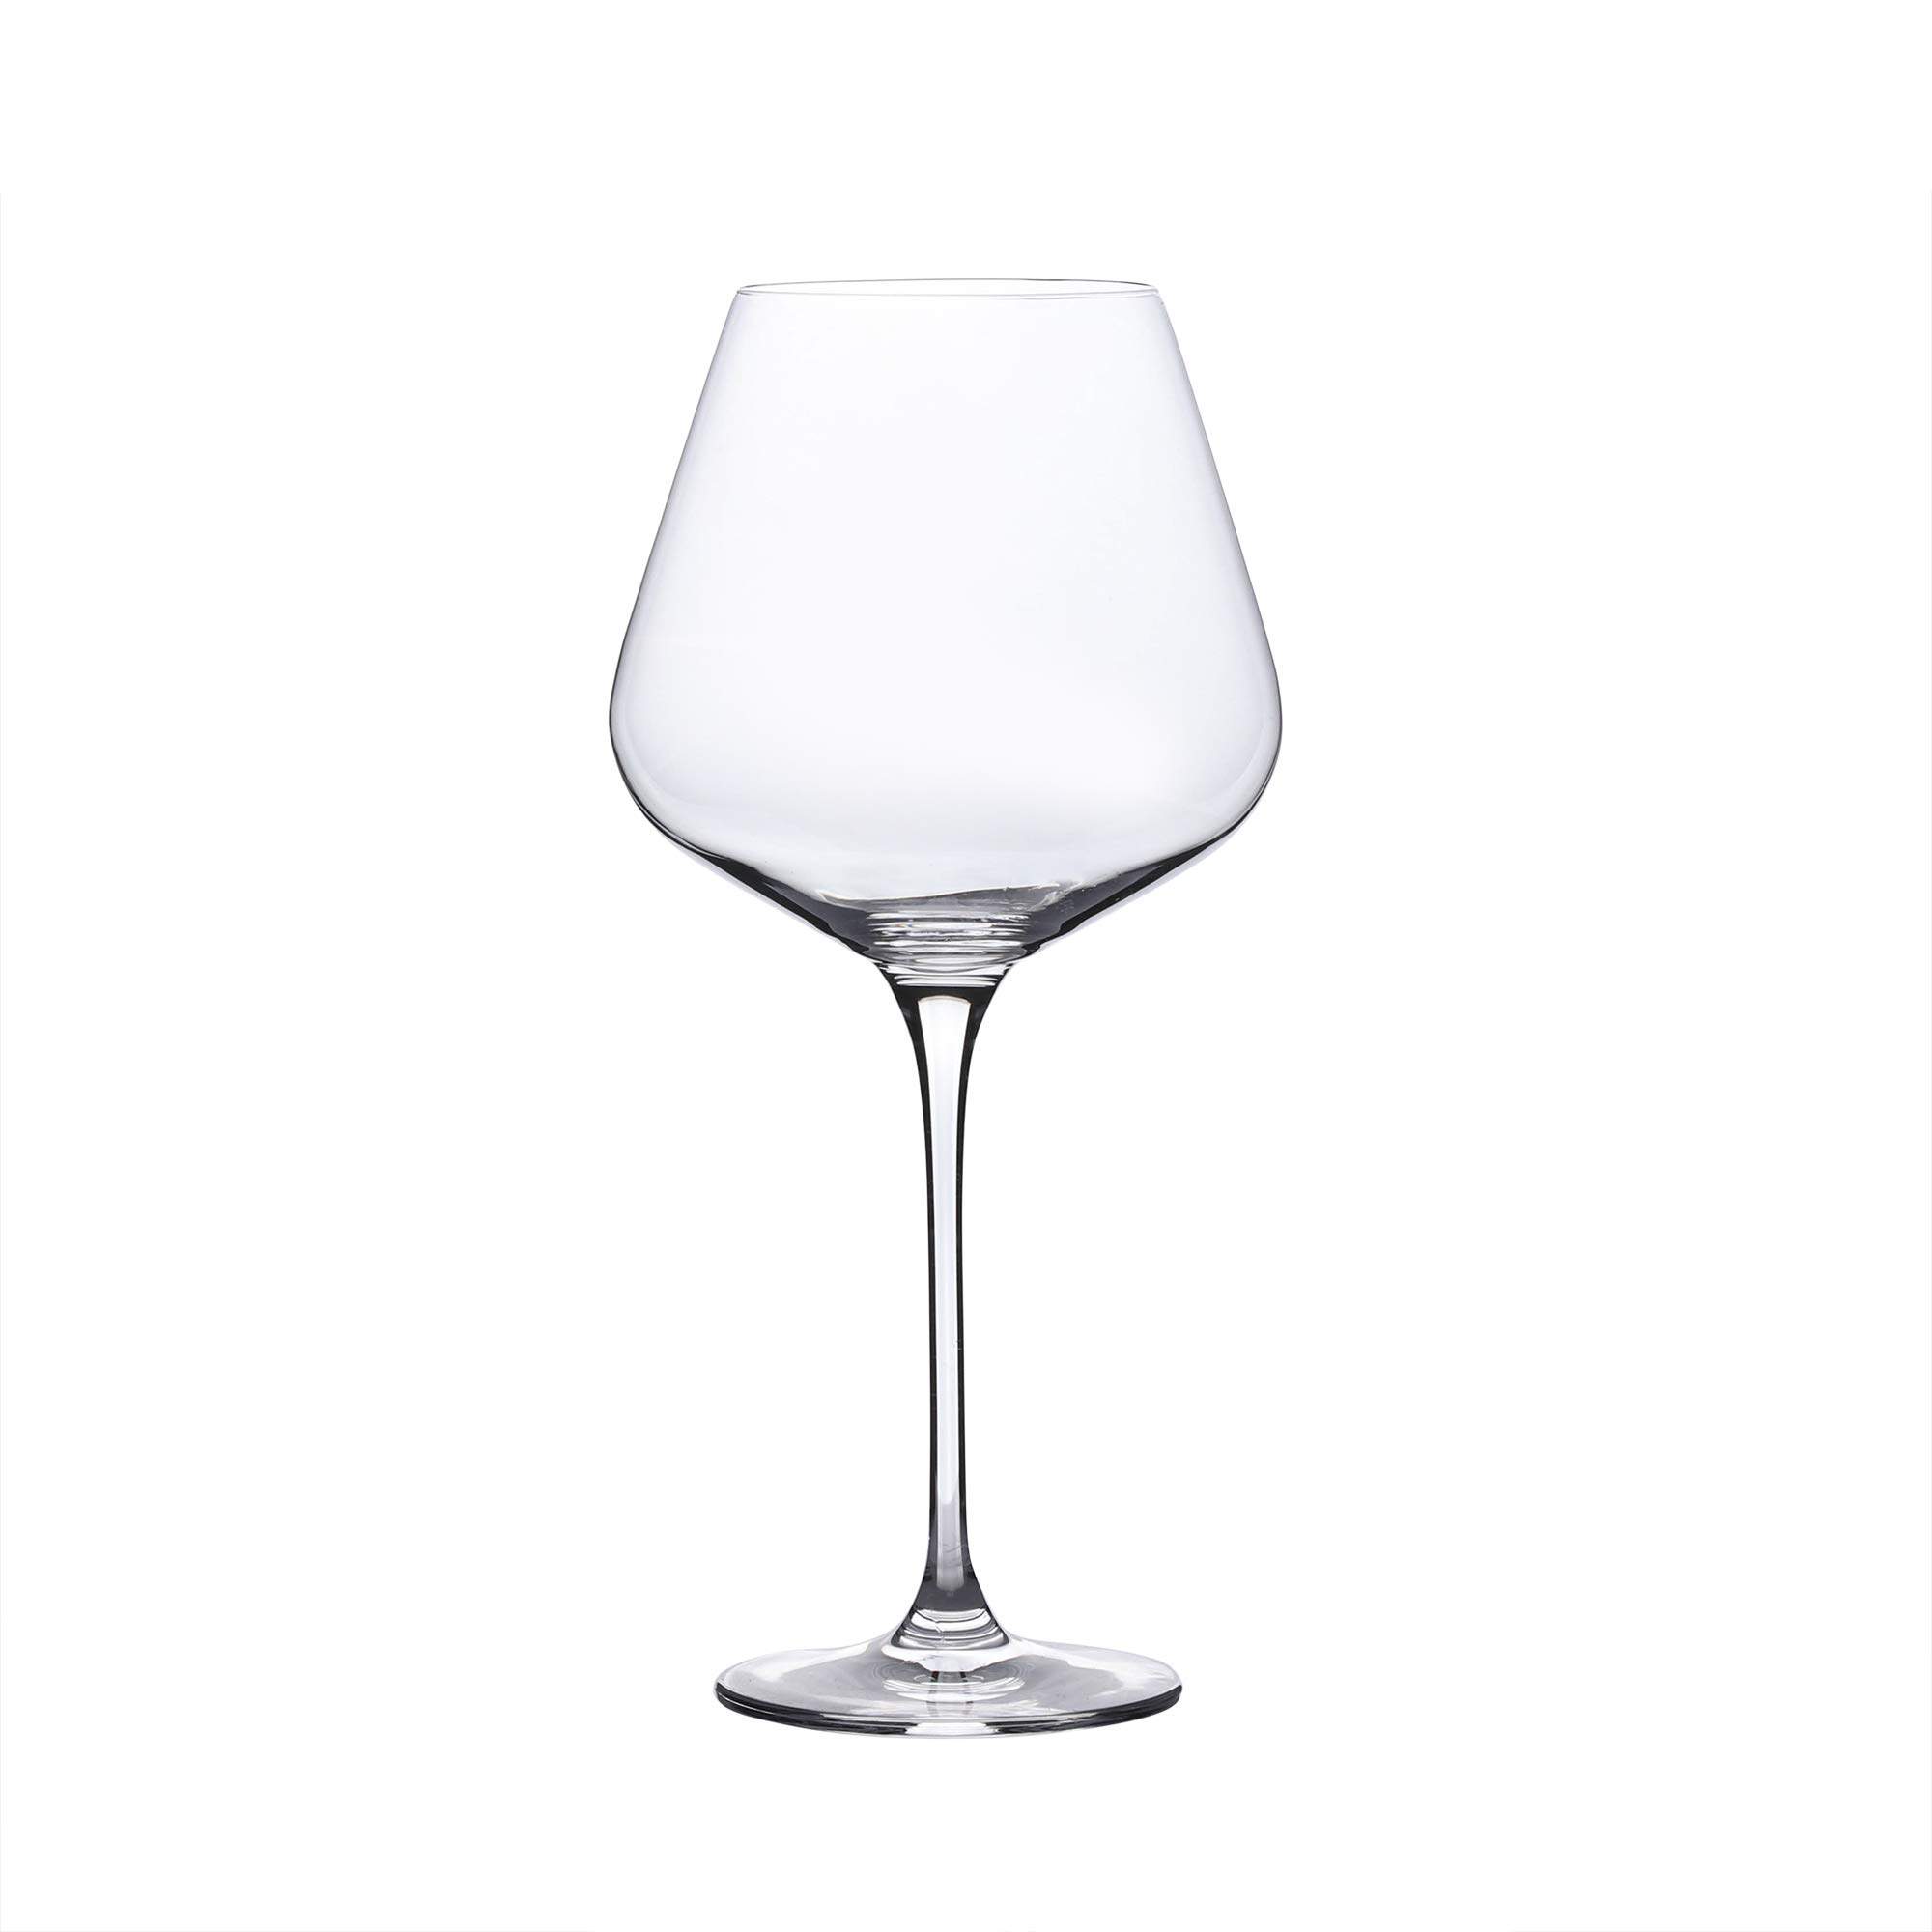 Red Wine Glasses - Crystal Glass - Lead Free - Wine Glasses Set of 4 (29 Ounce) by WH Housewares (Image #2)